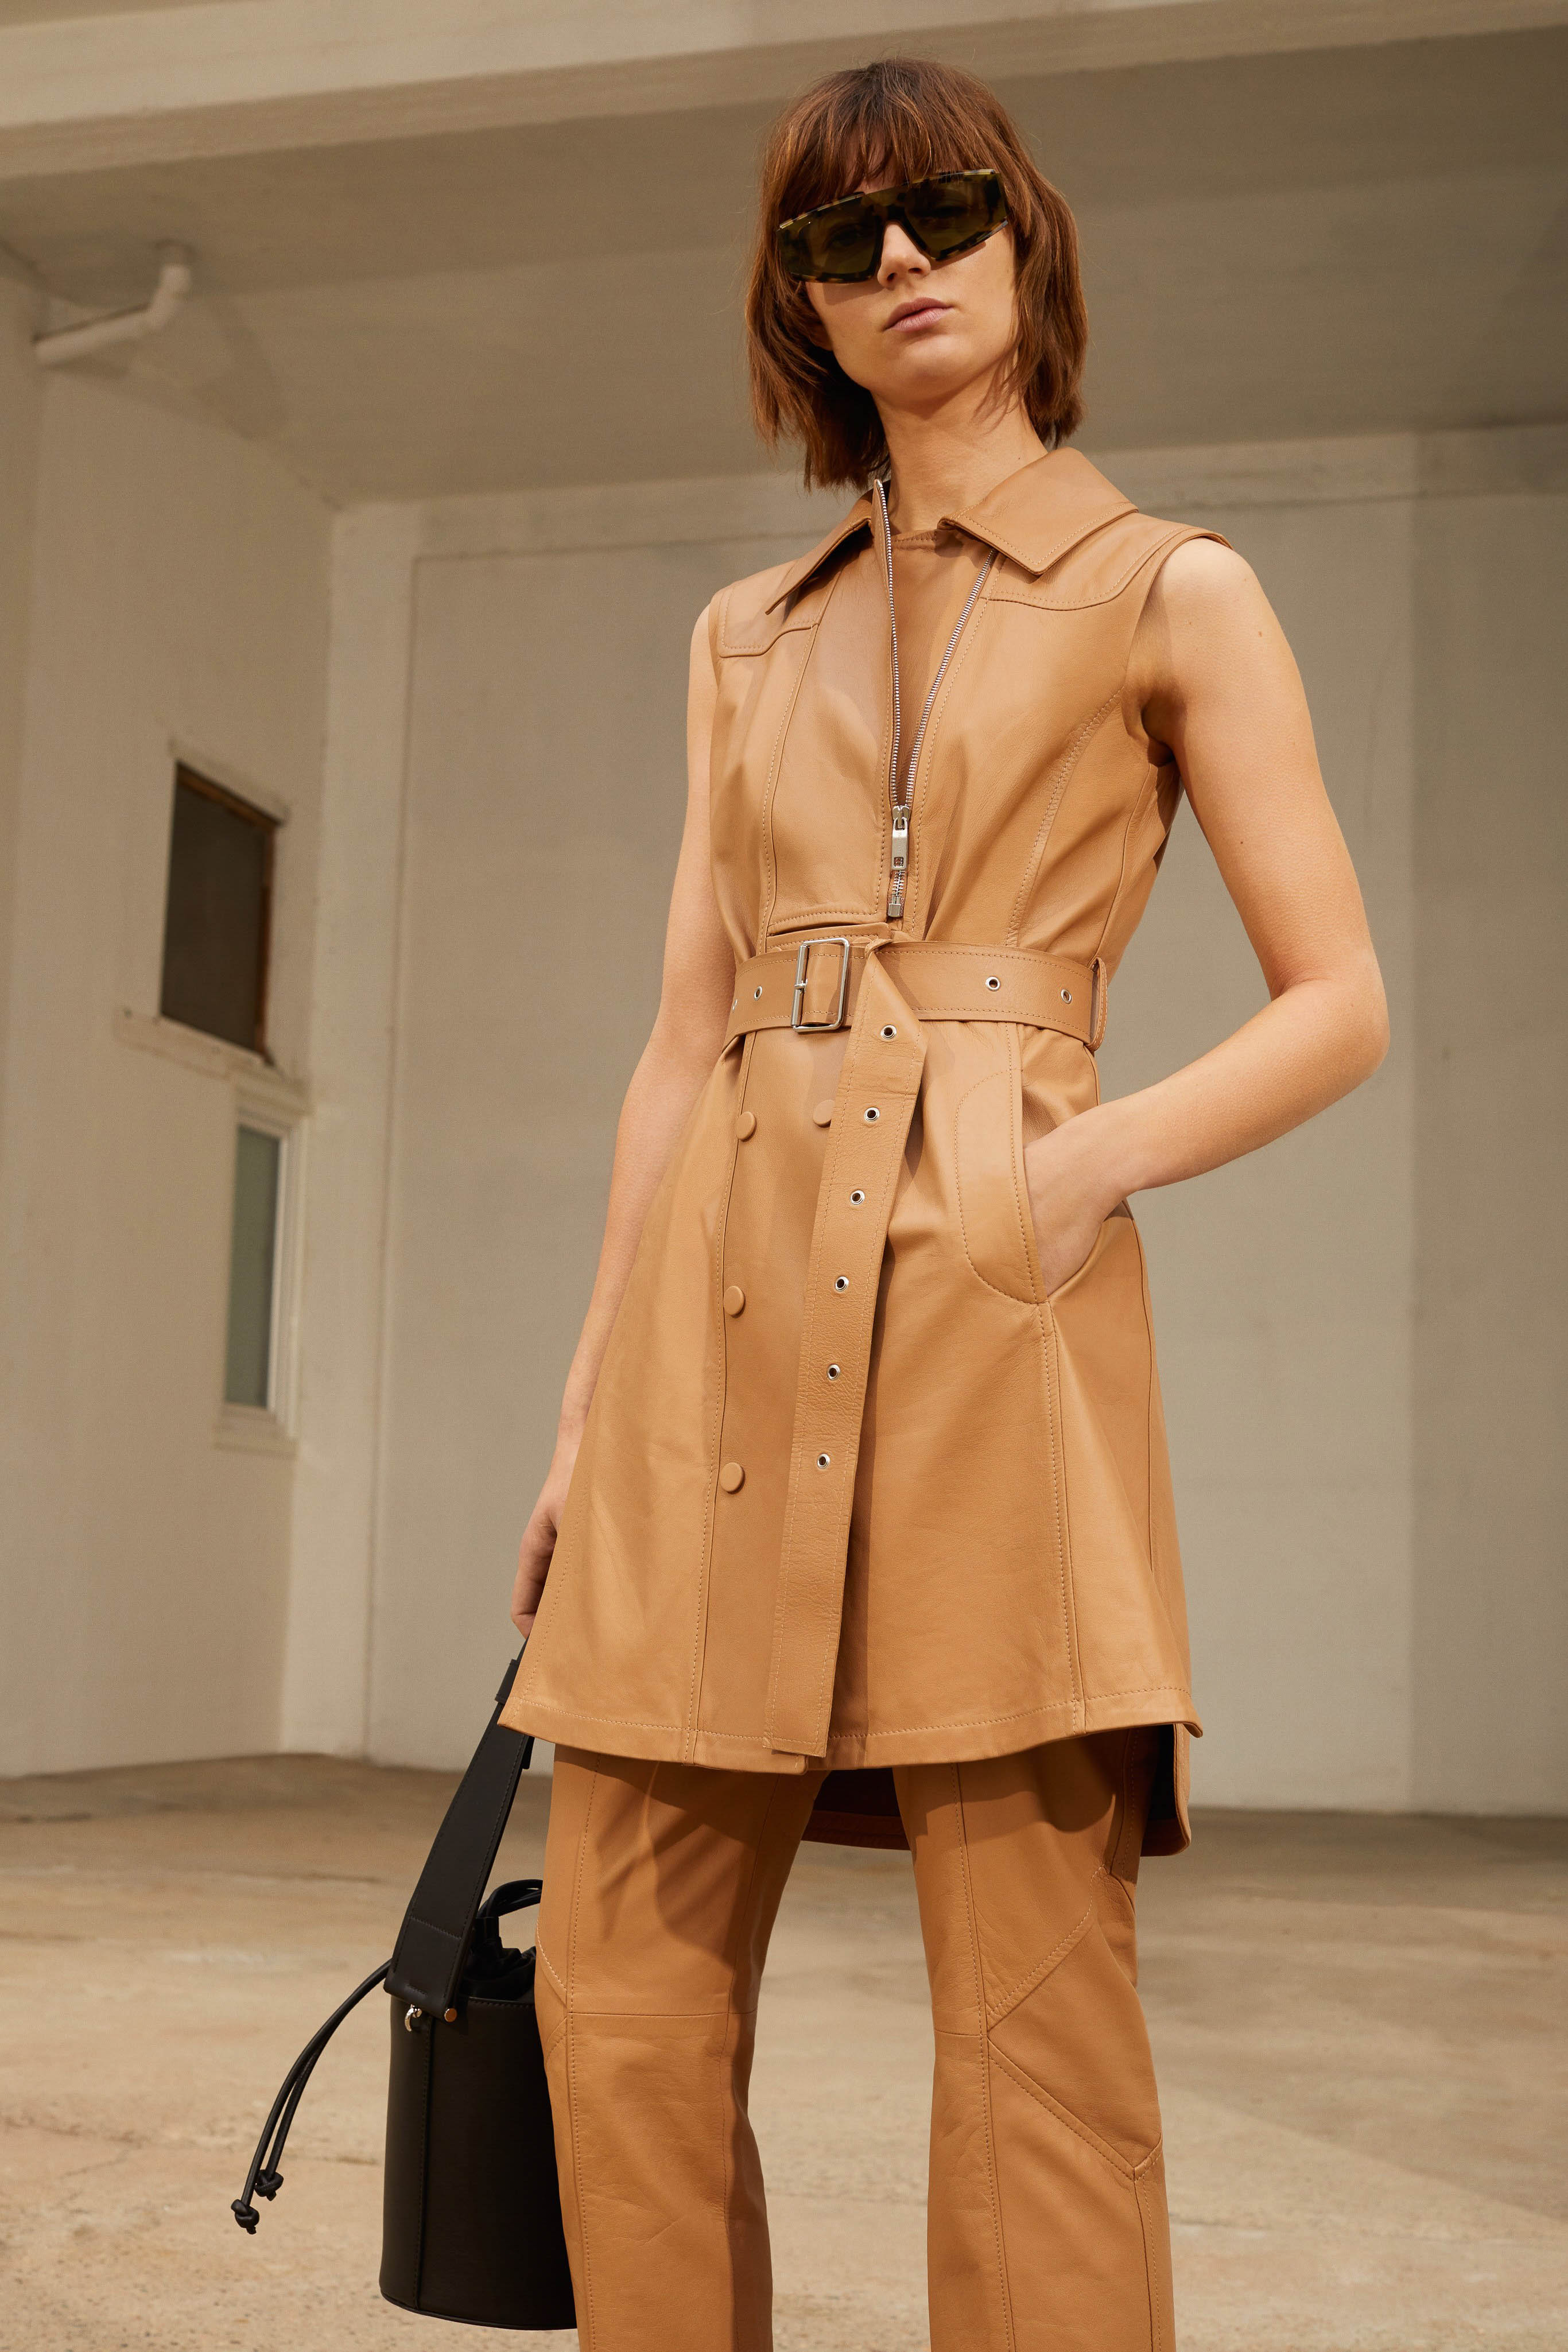 Sportmax Pre fall 2020 Lookbook trends runway coverage Ready To Wear Vogue sleeveless jacket vest